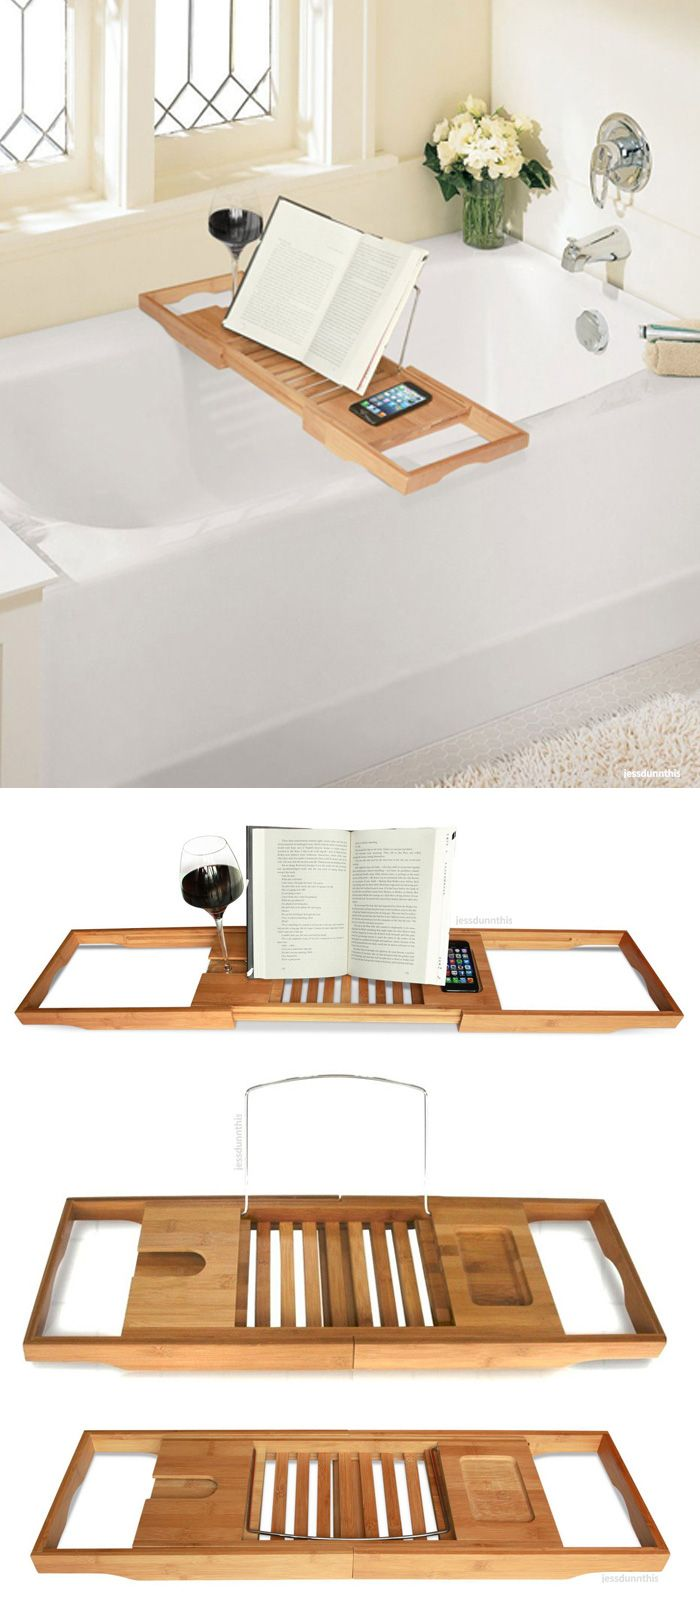 Expandable & adjustable bath caddy fits on any tub! #product_design ...